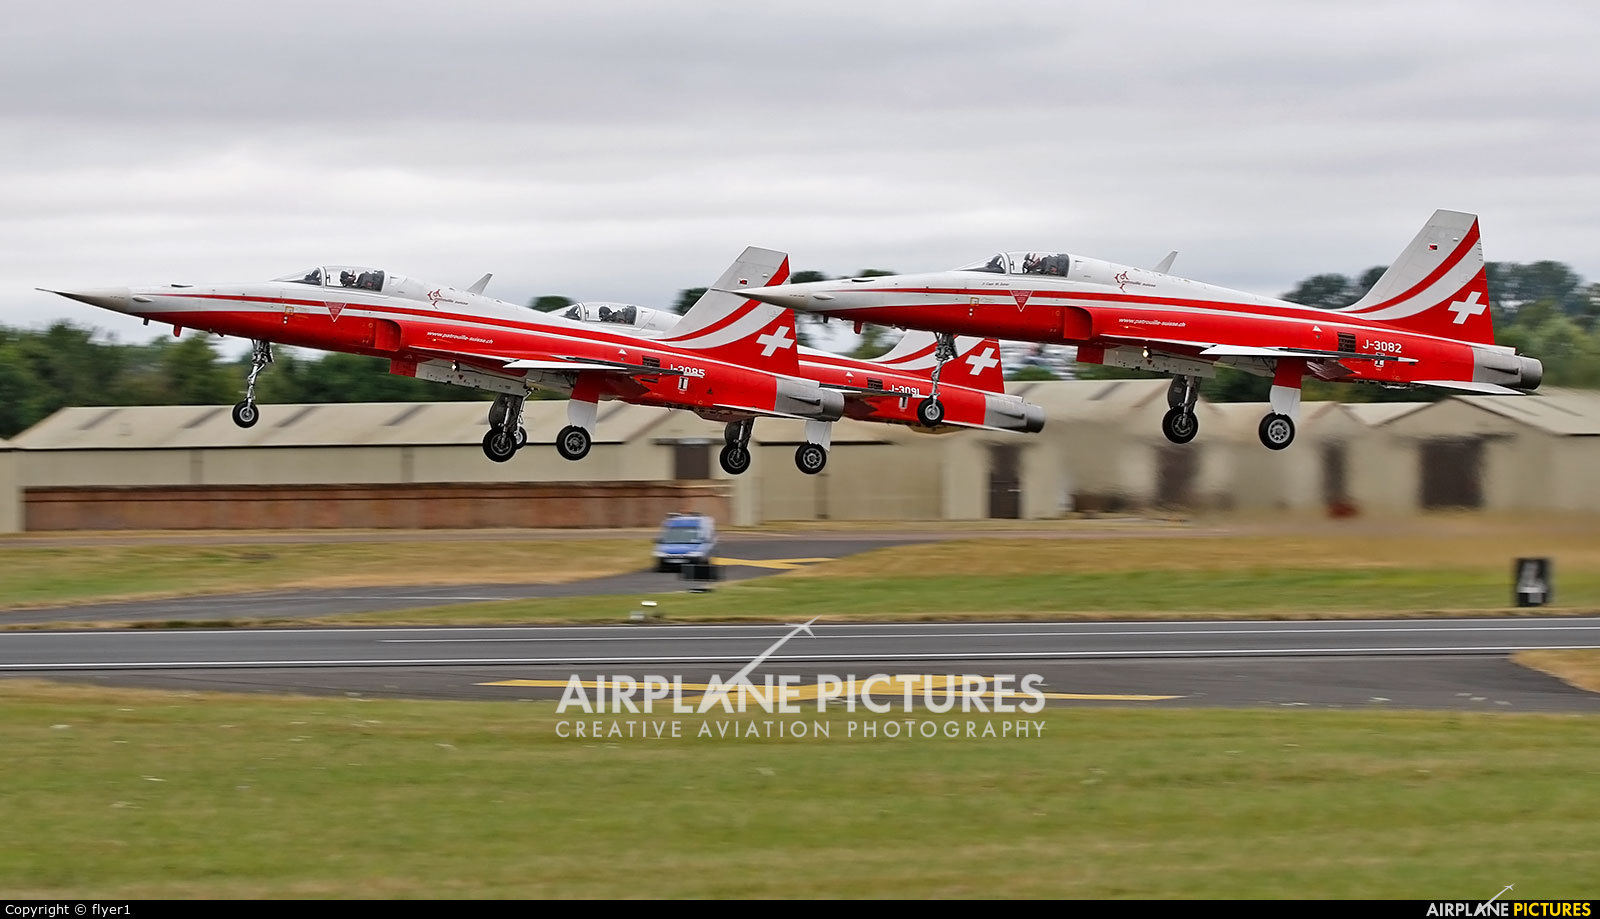 Switzerland - Air Force: Patrouille Suisse J-3082 aircraft at Fairford